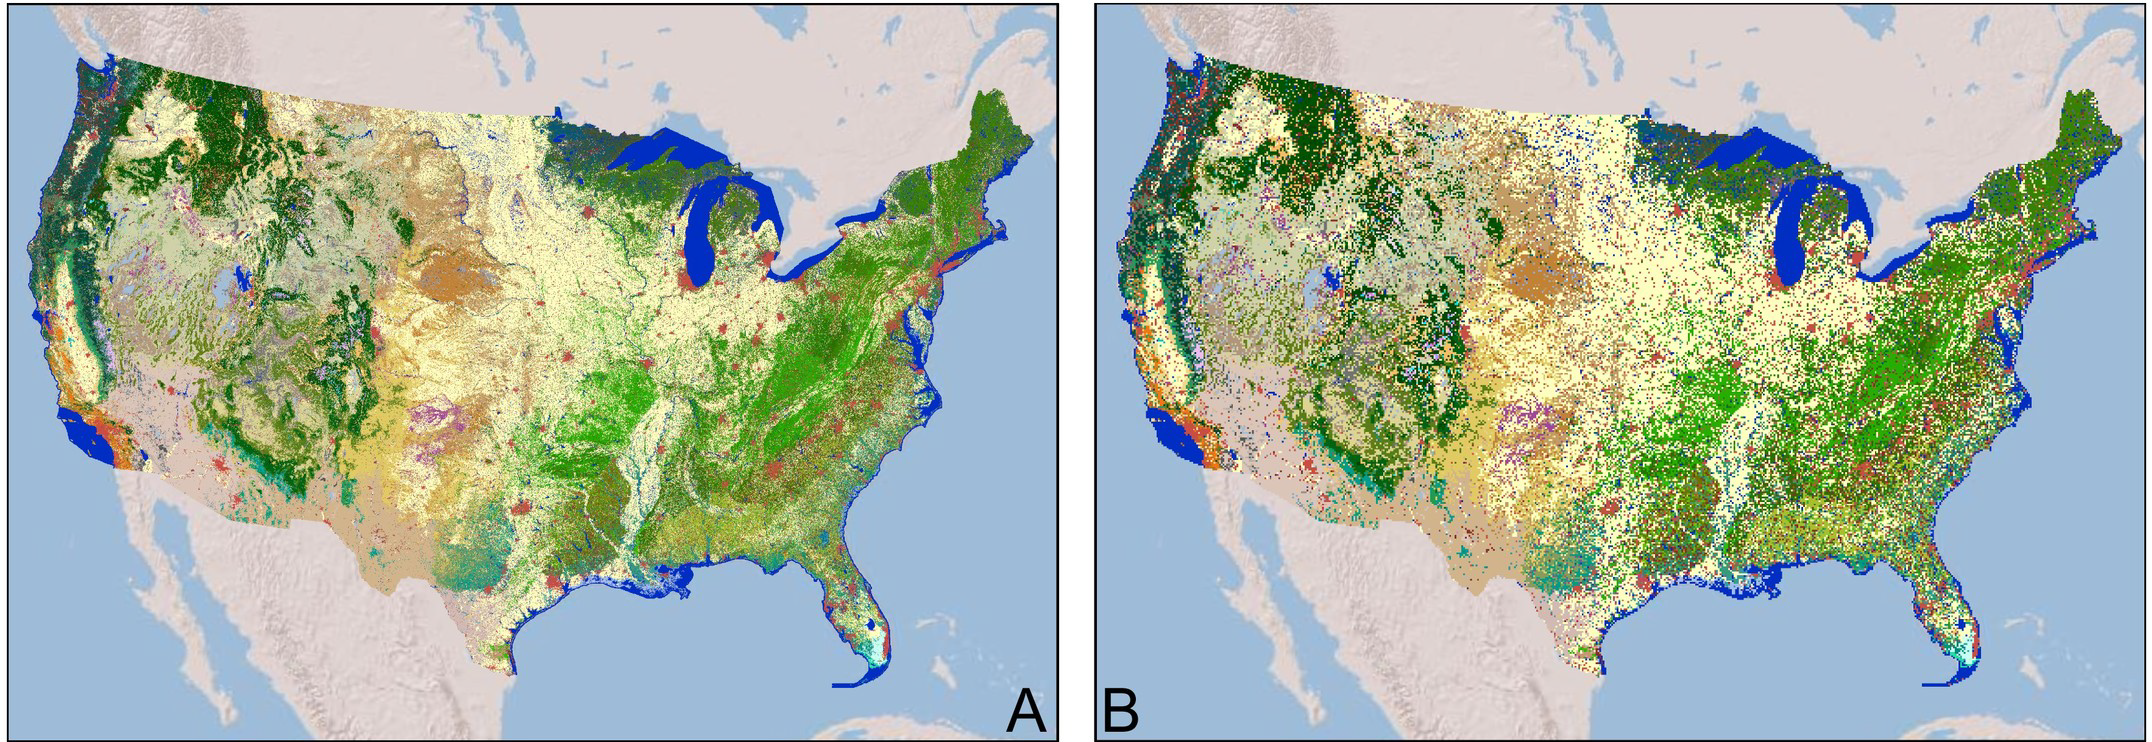 Classifying Land Use Practices in the Holocene by Sandy Harrison